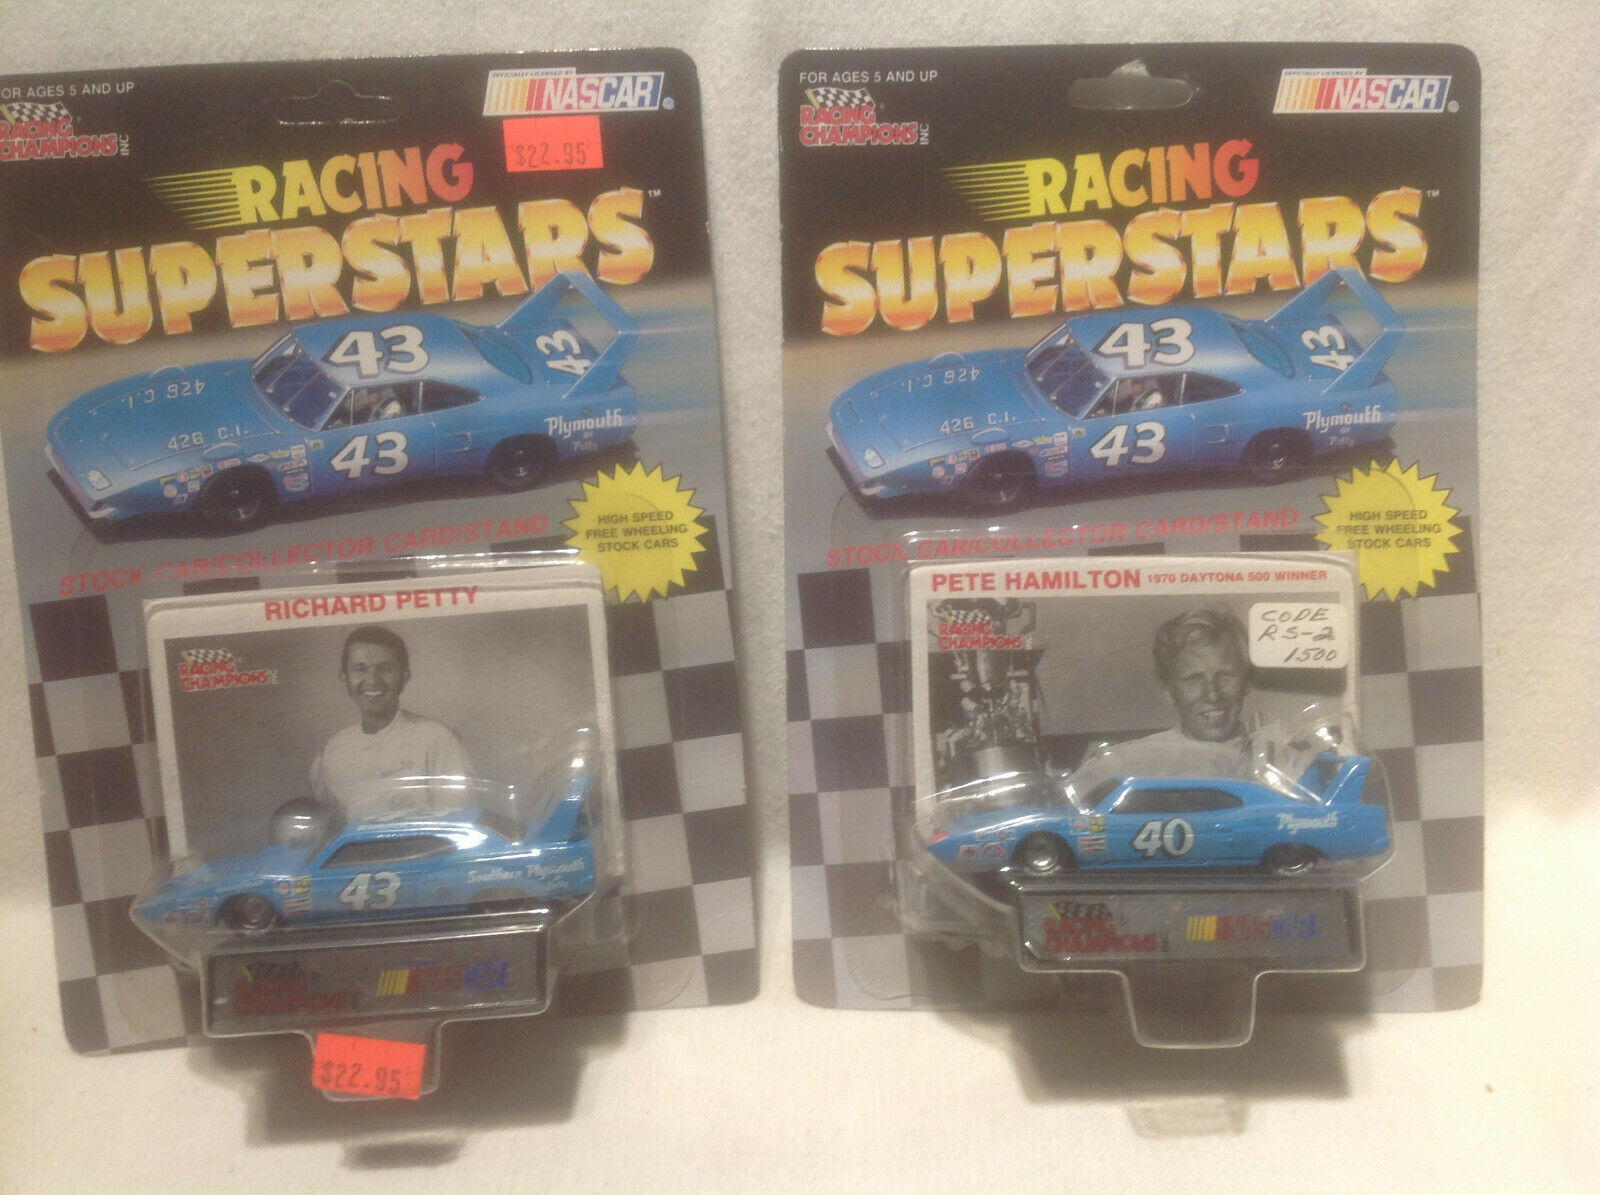 RACING CHAMPIONS-RICHARD PETTY, PETE HAMILTON-PLYMOUTH-1 64-RARE EDITIONS